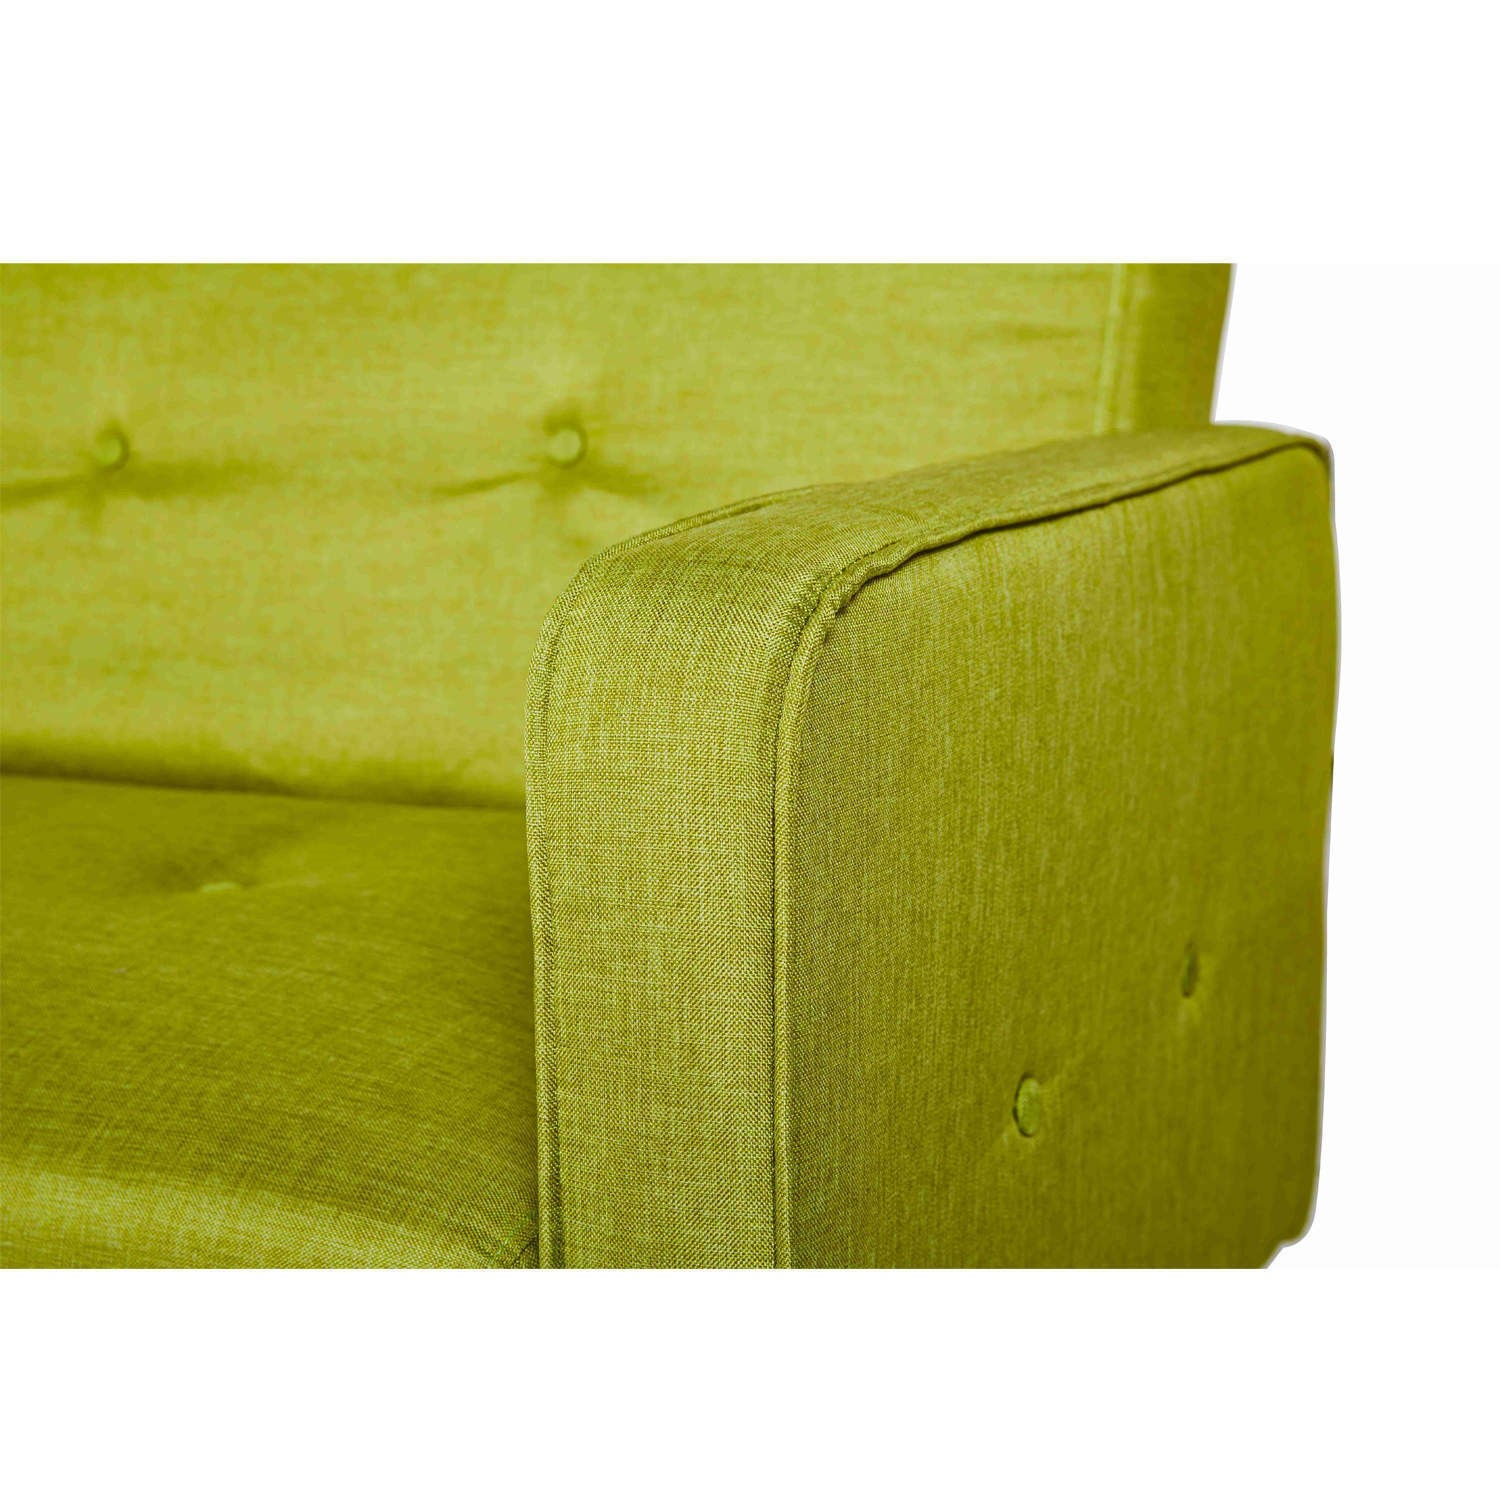 Prime Milu 3 Seater Fabric Sofa Bed In Lime Green Caraccident5 Cool Chair Designs And Ideas Caraccident5Info